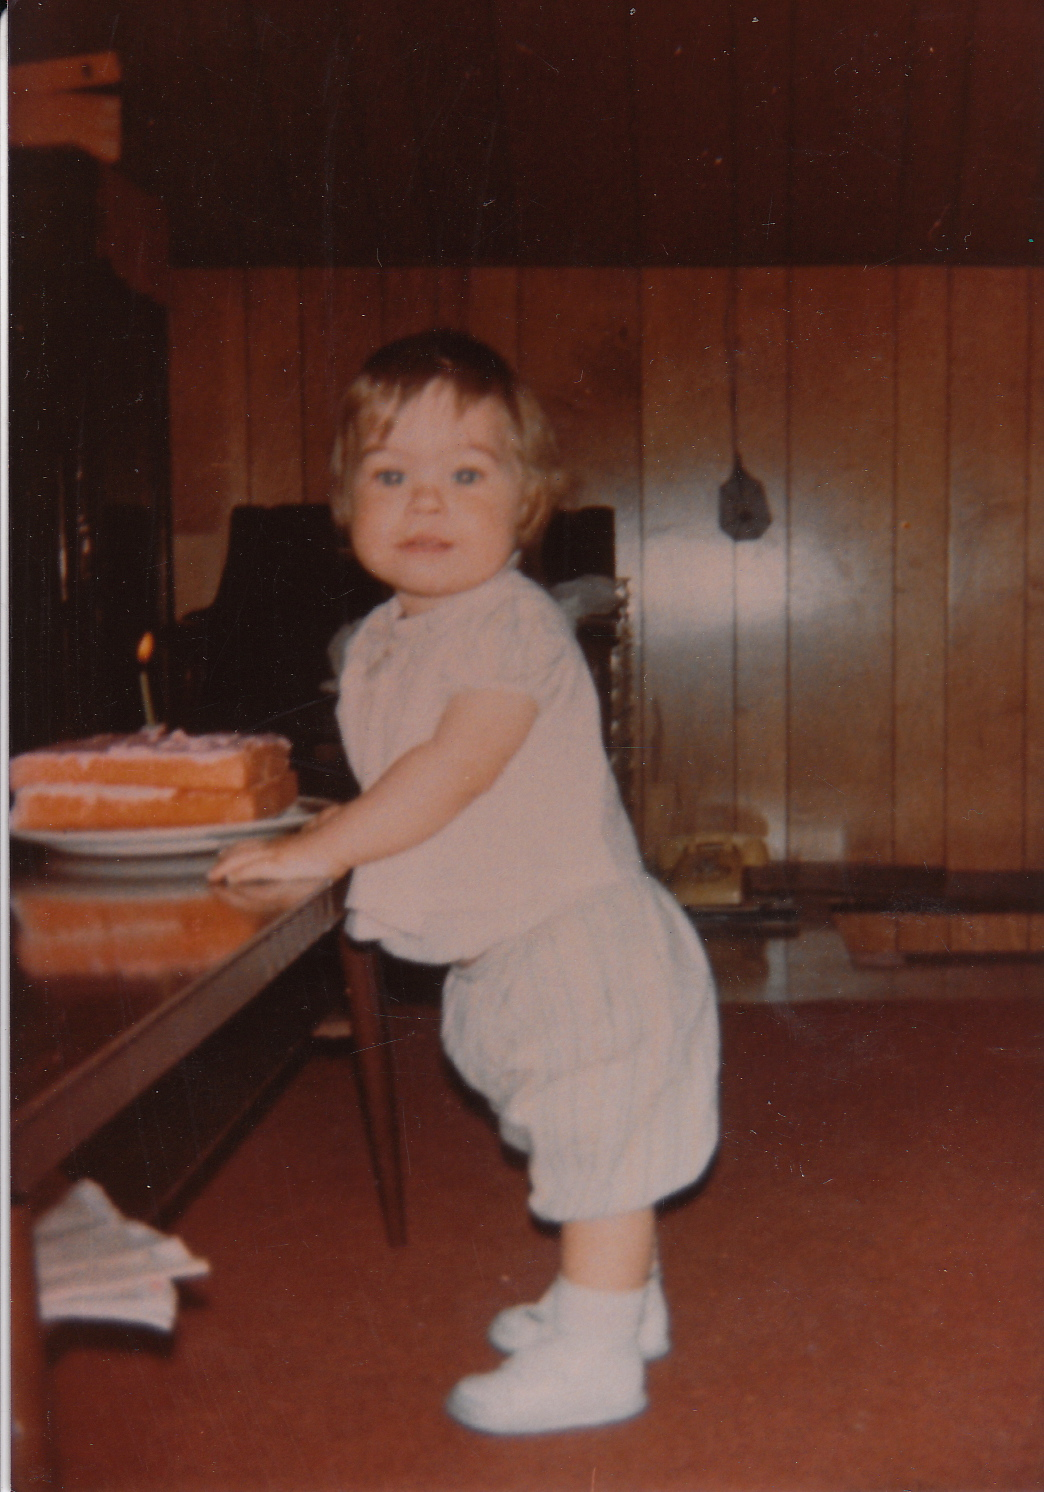 1st cake, 1970. Dig the fly swatter as wall art.